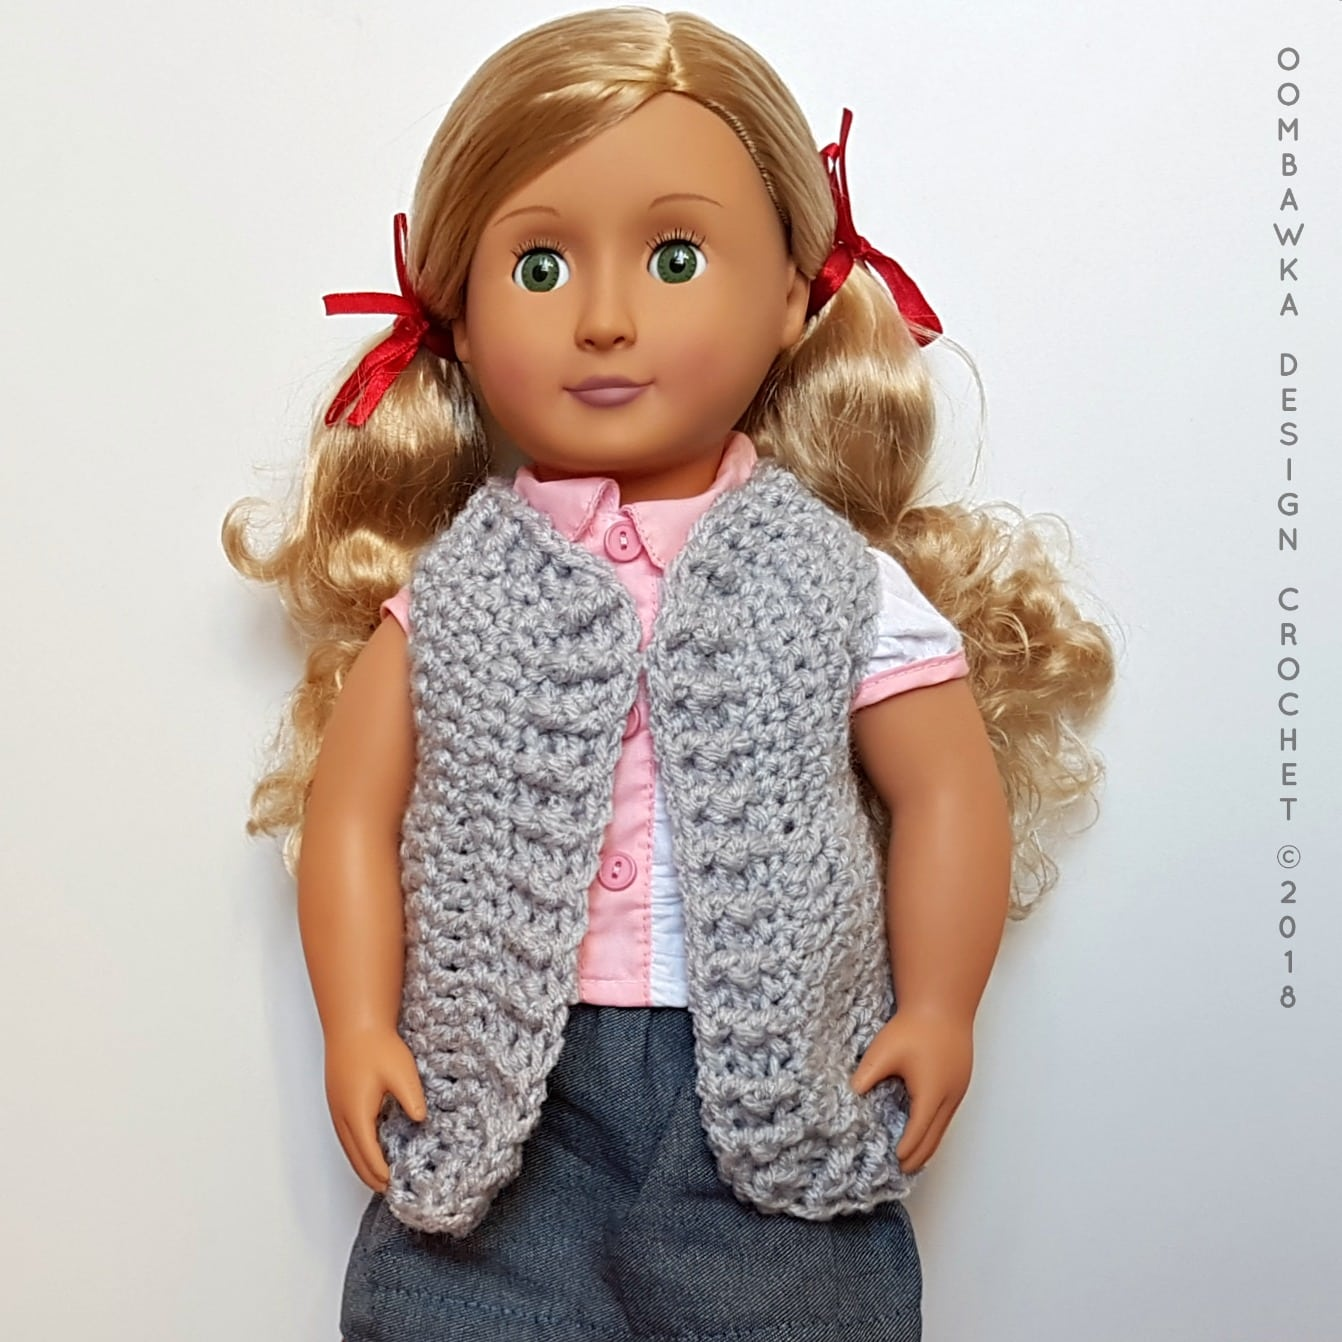 18 Inch Doll Clothes - Vest for Dolly Oombawka Design Crochet Free Pattern